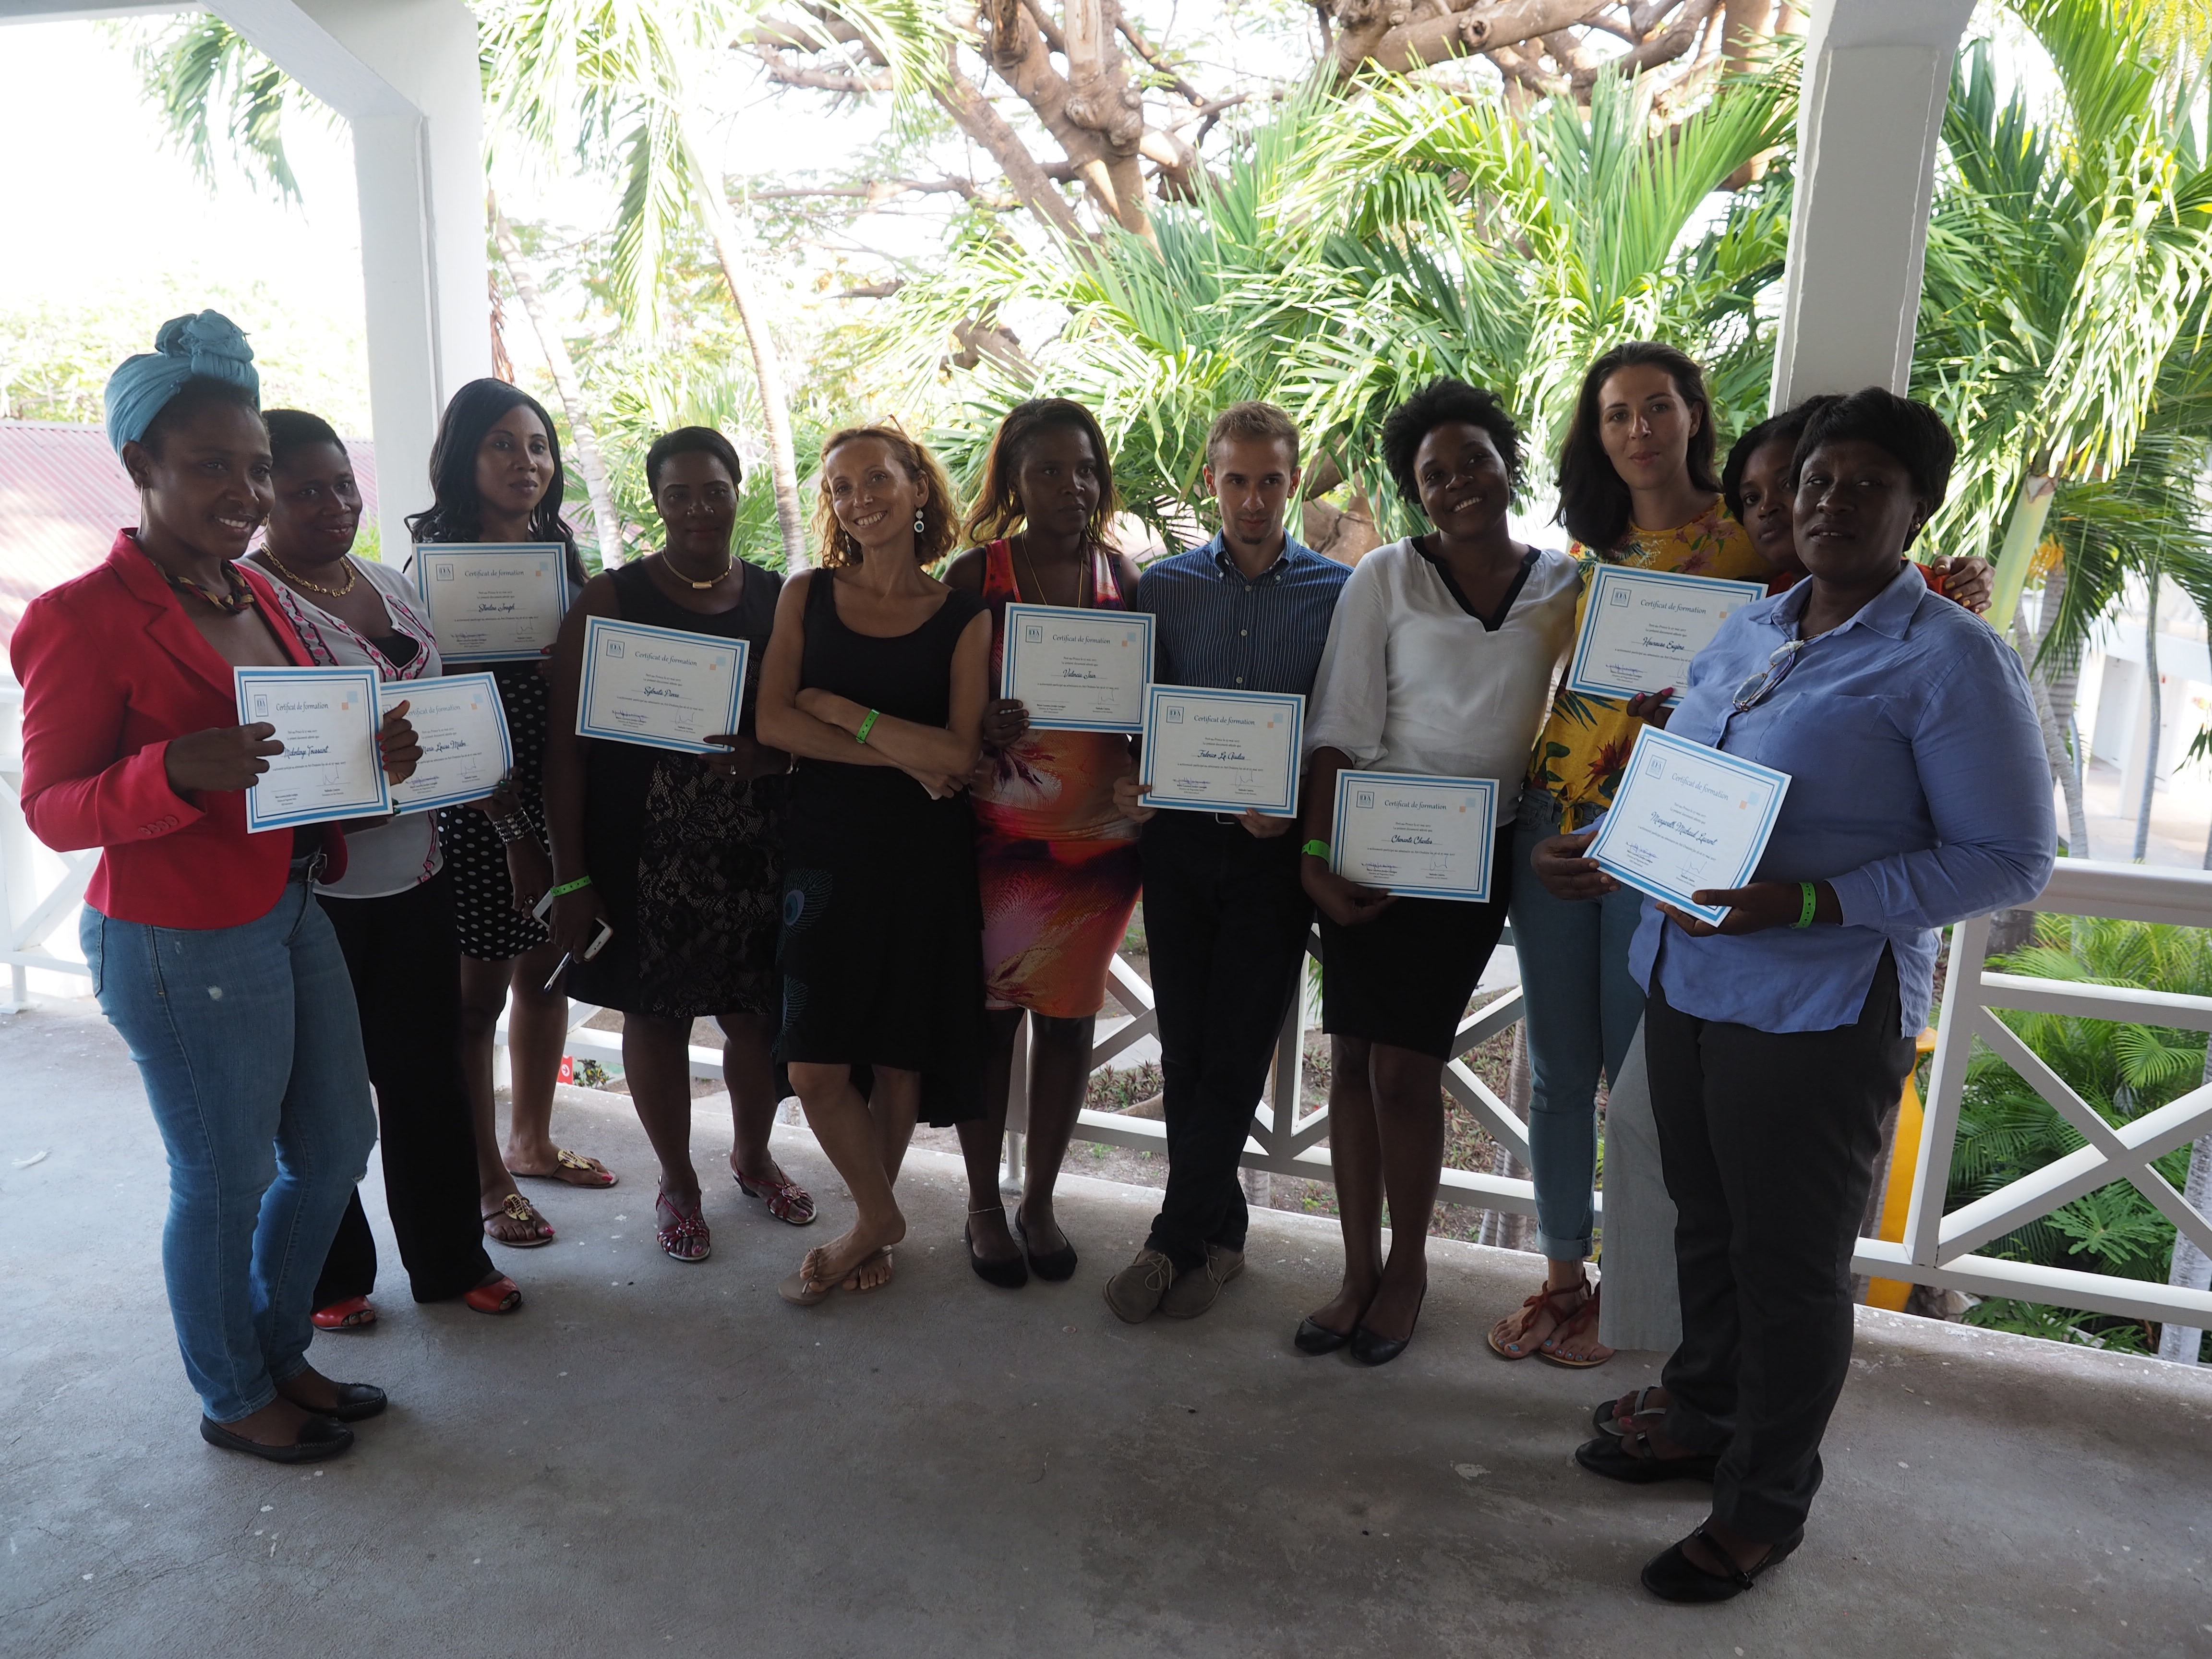 Nathalie Castera, Oratory Professor, with the participants in the training seminar